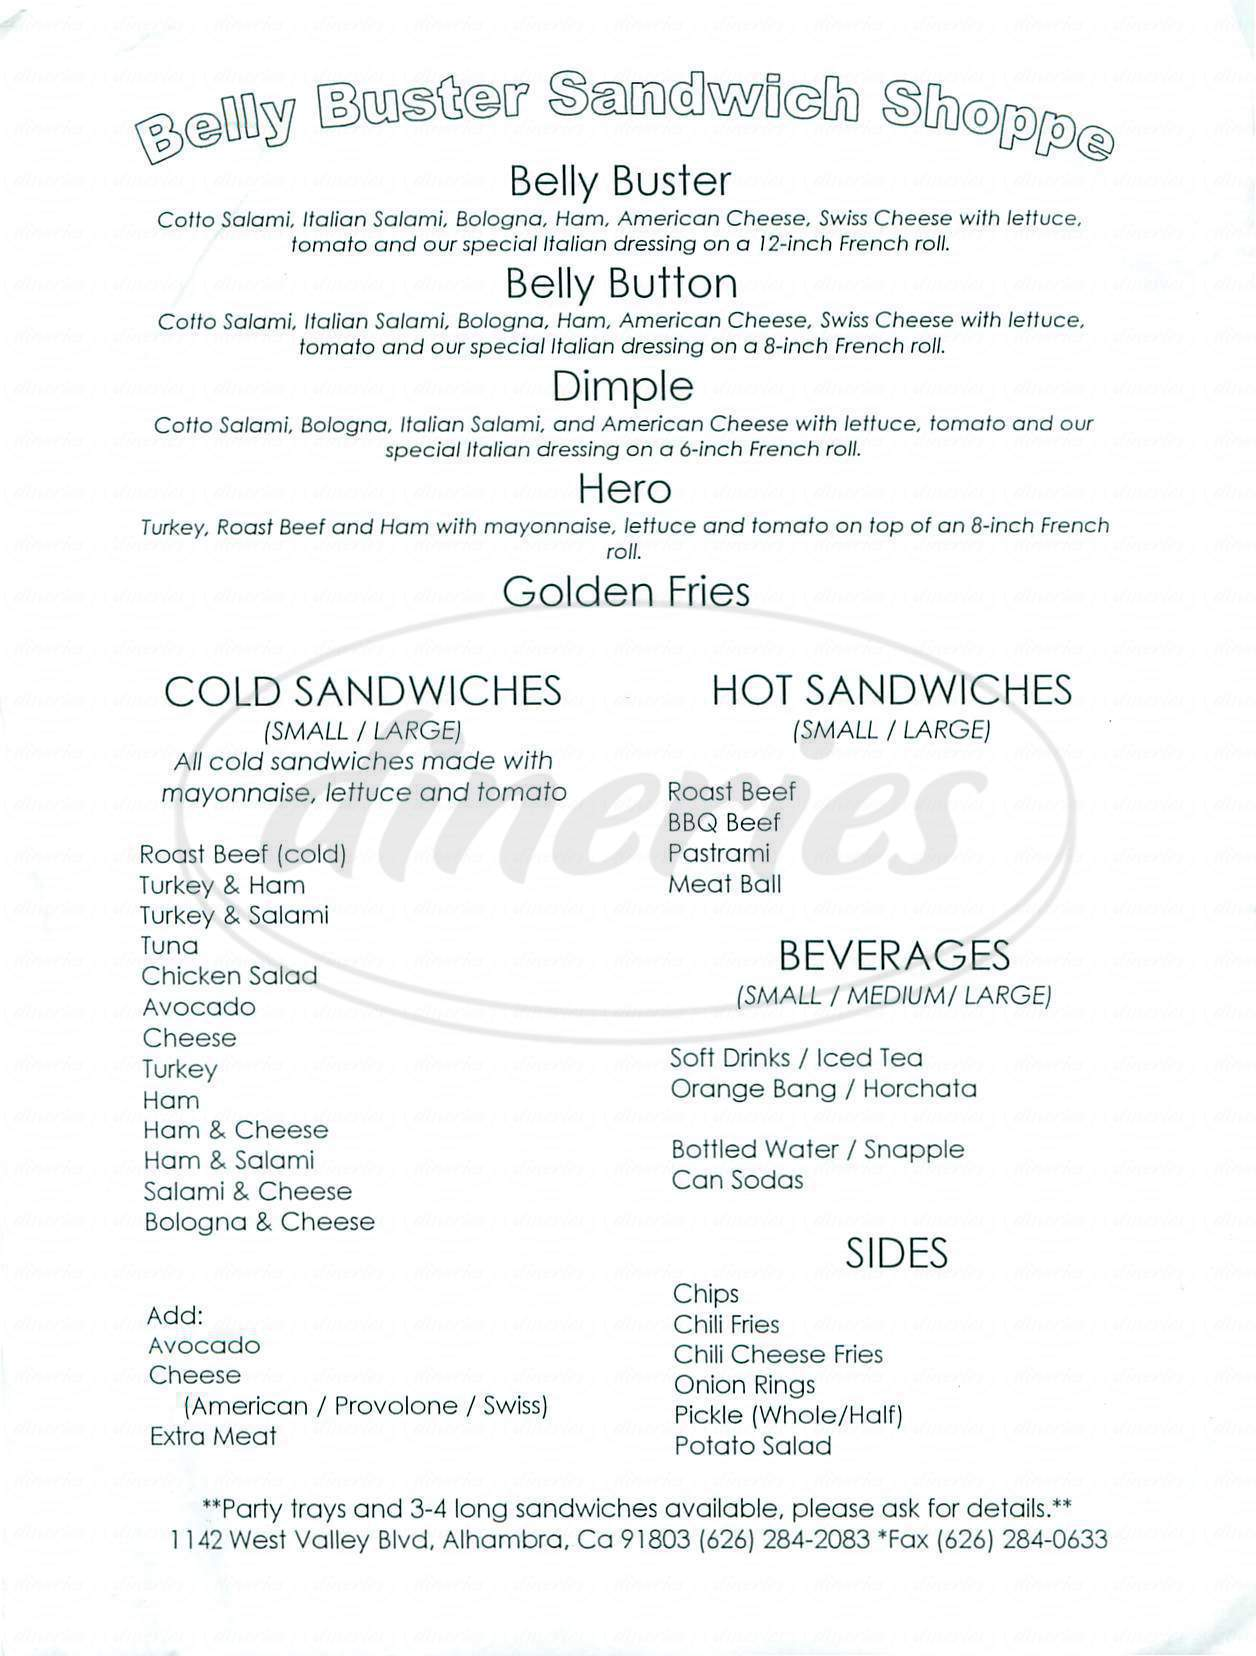 menu for Belly Buster Sandwich Shoppe